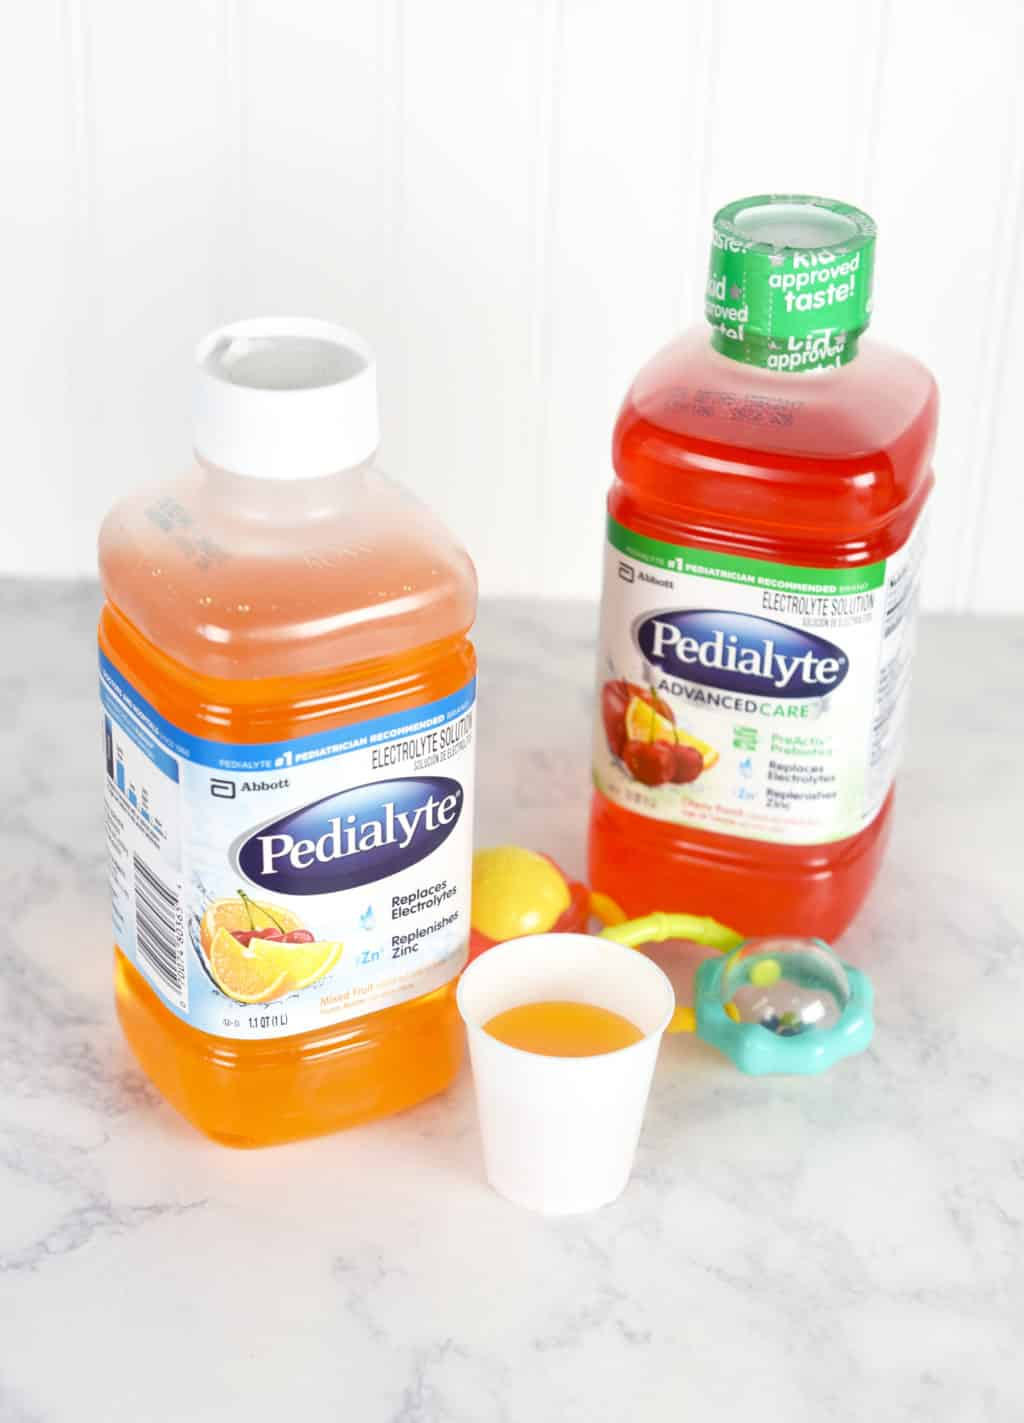 Pedialyte for Kids to prevent dehydration!